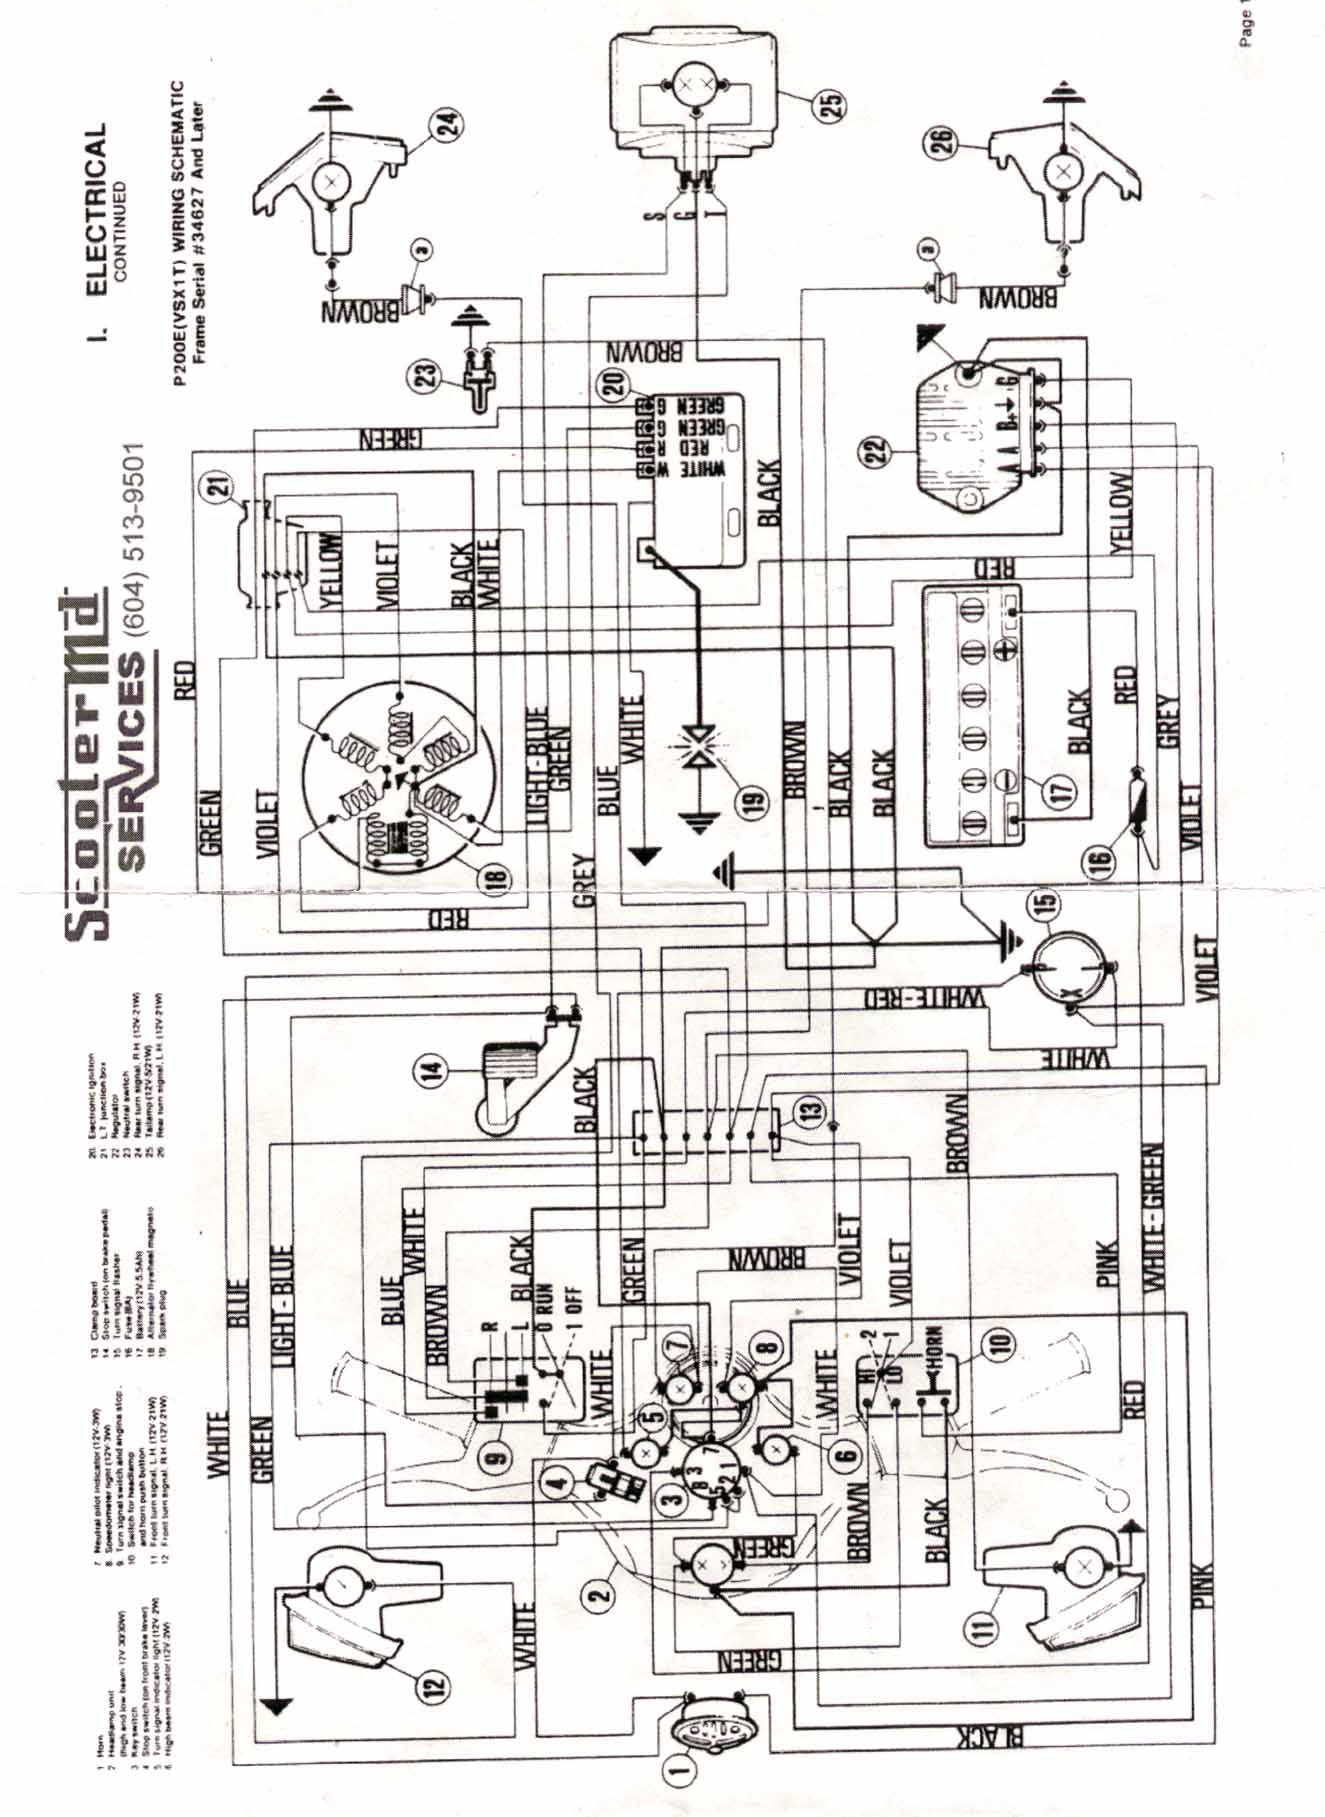 p200diag2 vespa p series maintenance & repair vespa px 200 wiring diagram at readyjetset.co